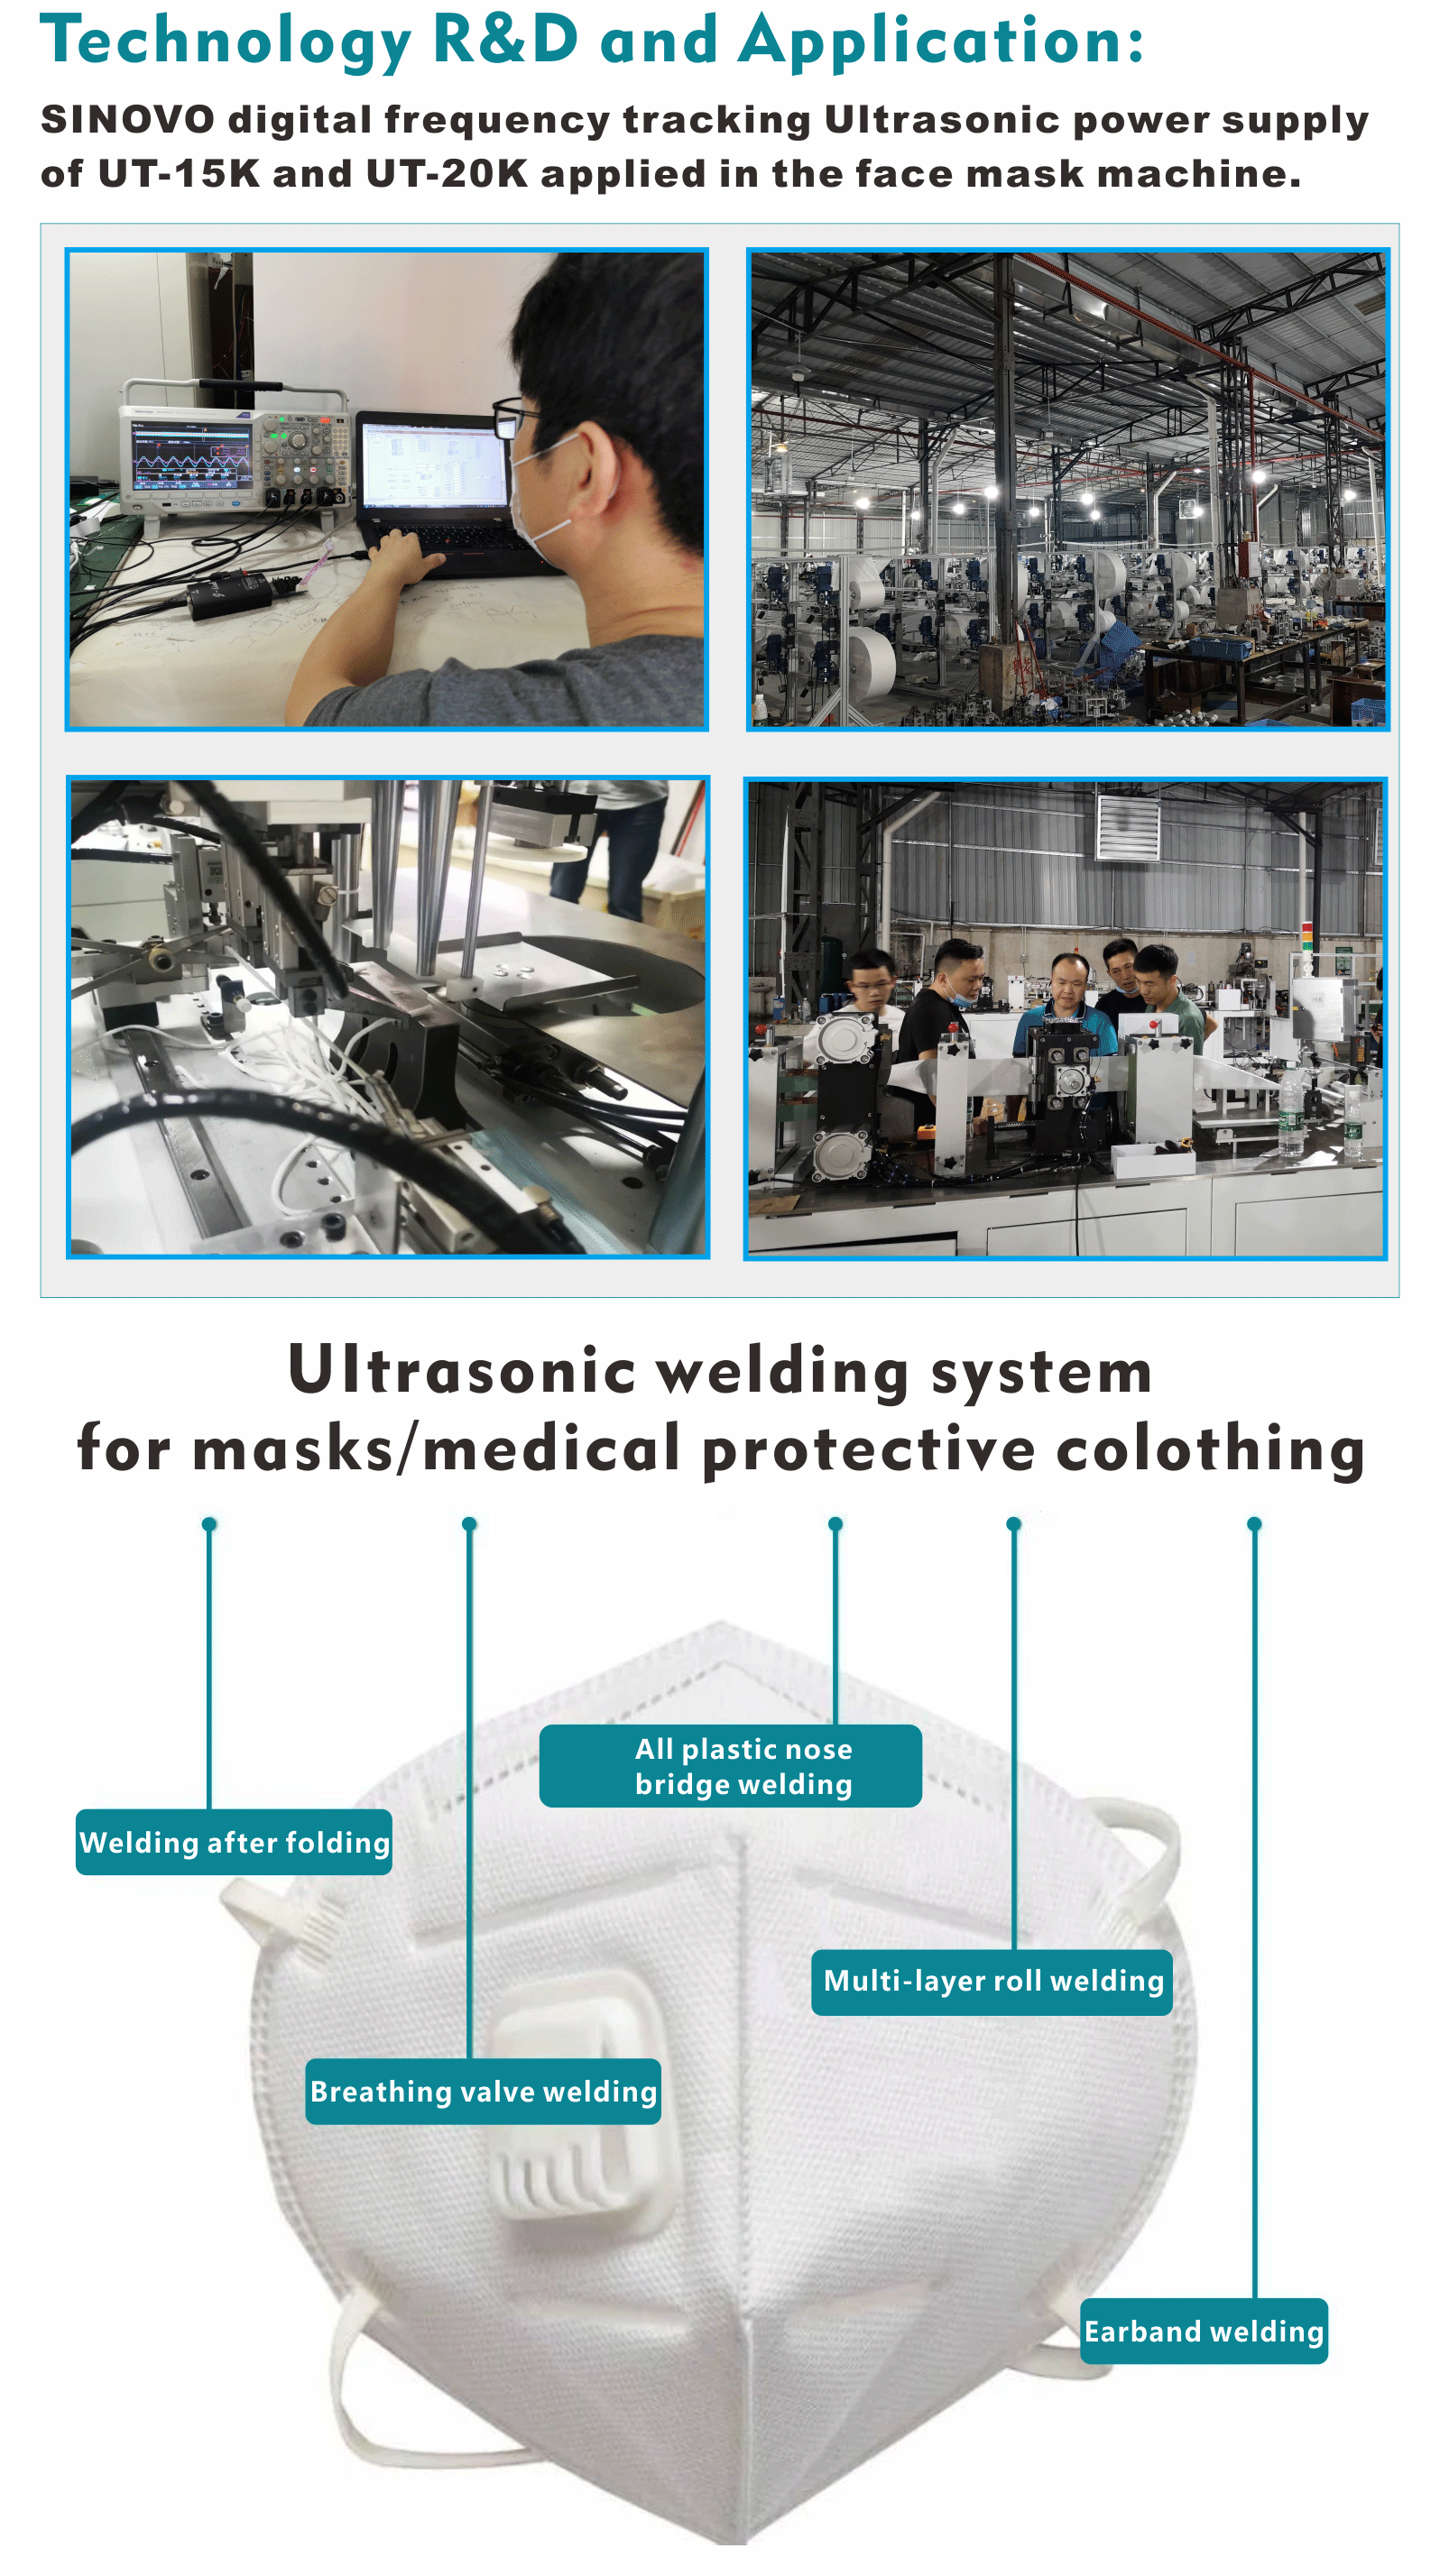 Ultrasonic welding and sealing machine for weld textiles and non-woven fabrics mask